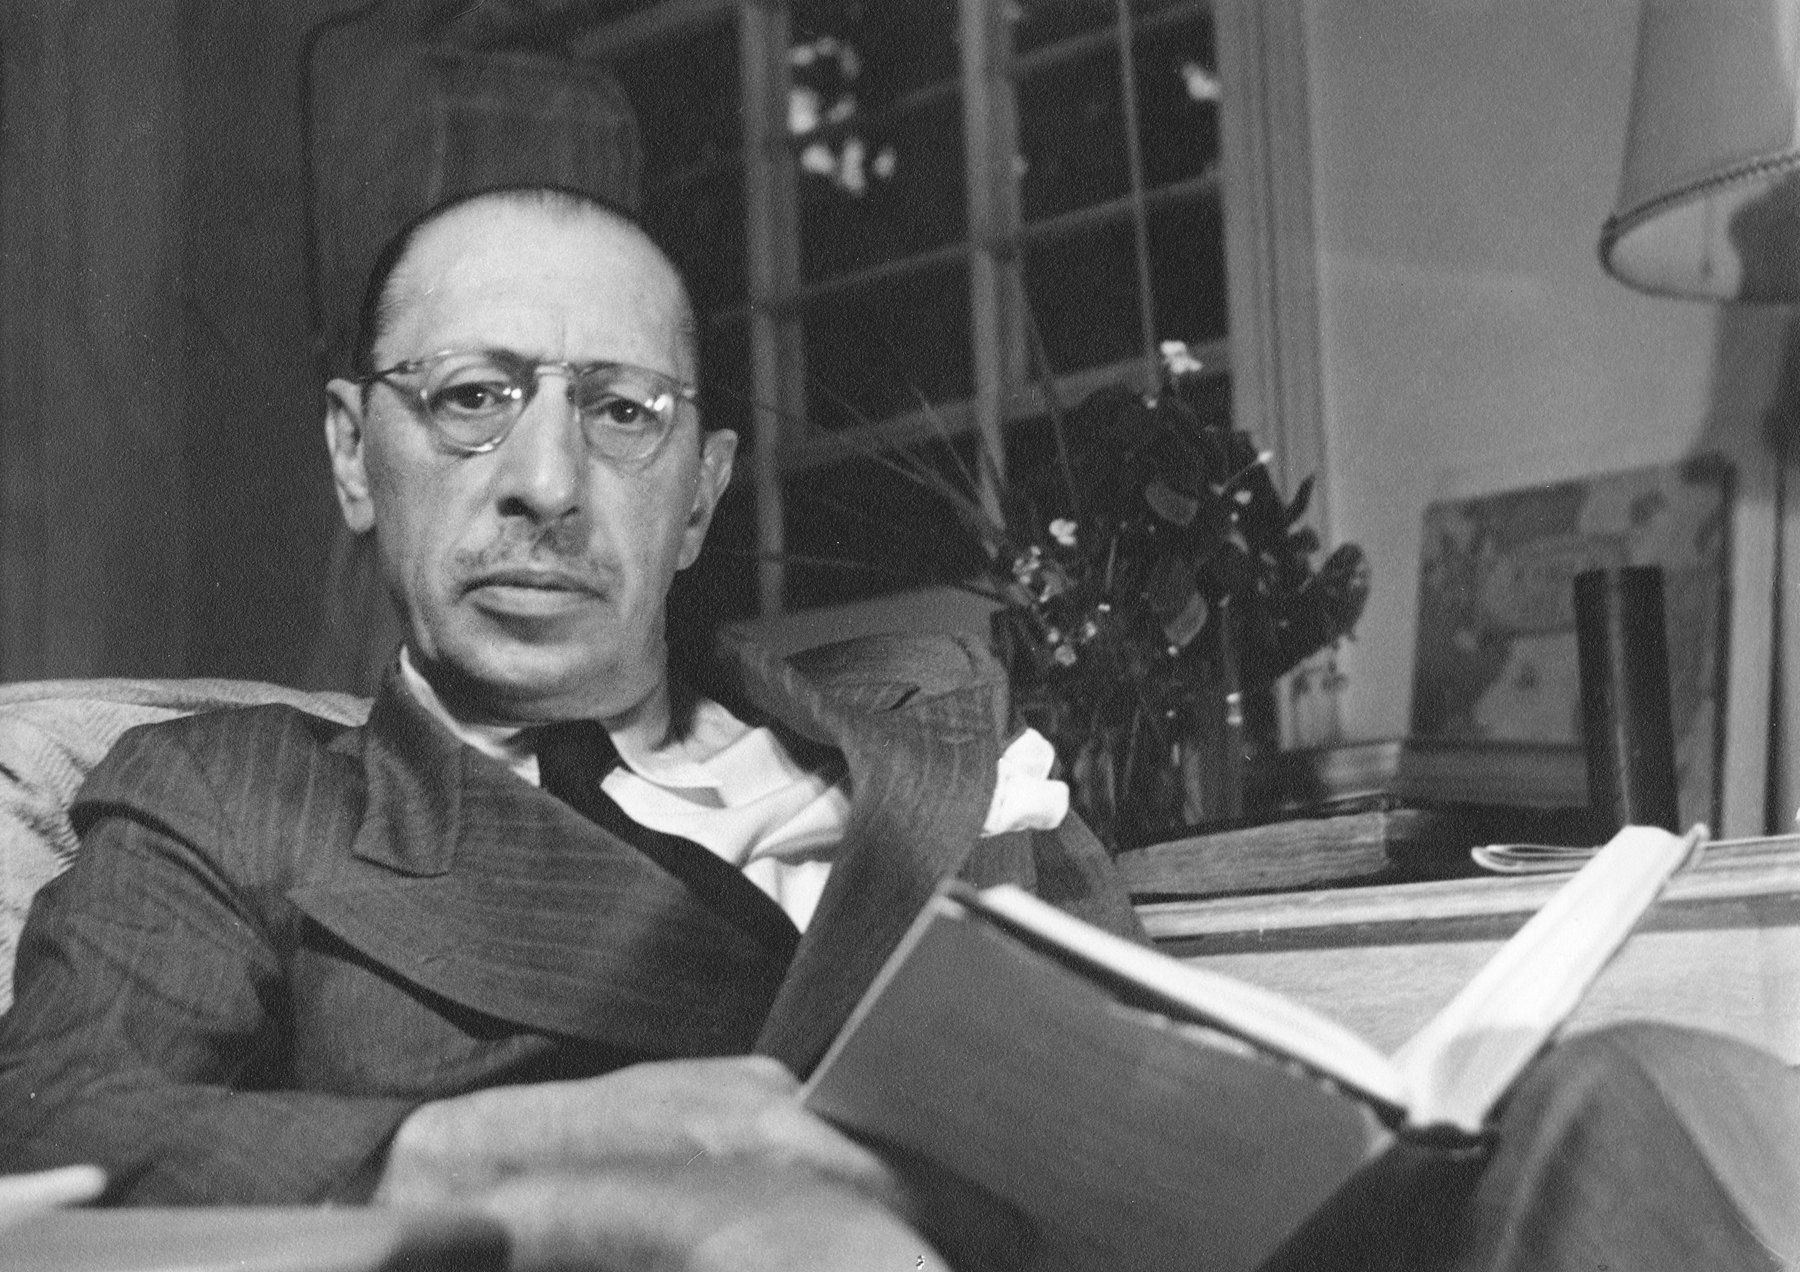 how stravinsky has contributed to the How stravinsky has contributed to the development of western music and or music technology essay stravinsky's developmental context igor fyodorovich stravinsky (june 17, 1882 – april 6, 1971) is known not just for the breadth of diversity acknowledged in his oeuvre, but for the impact and contribution it has made on western culture .